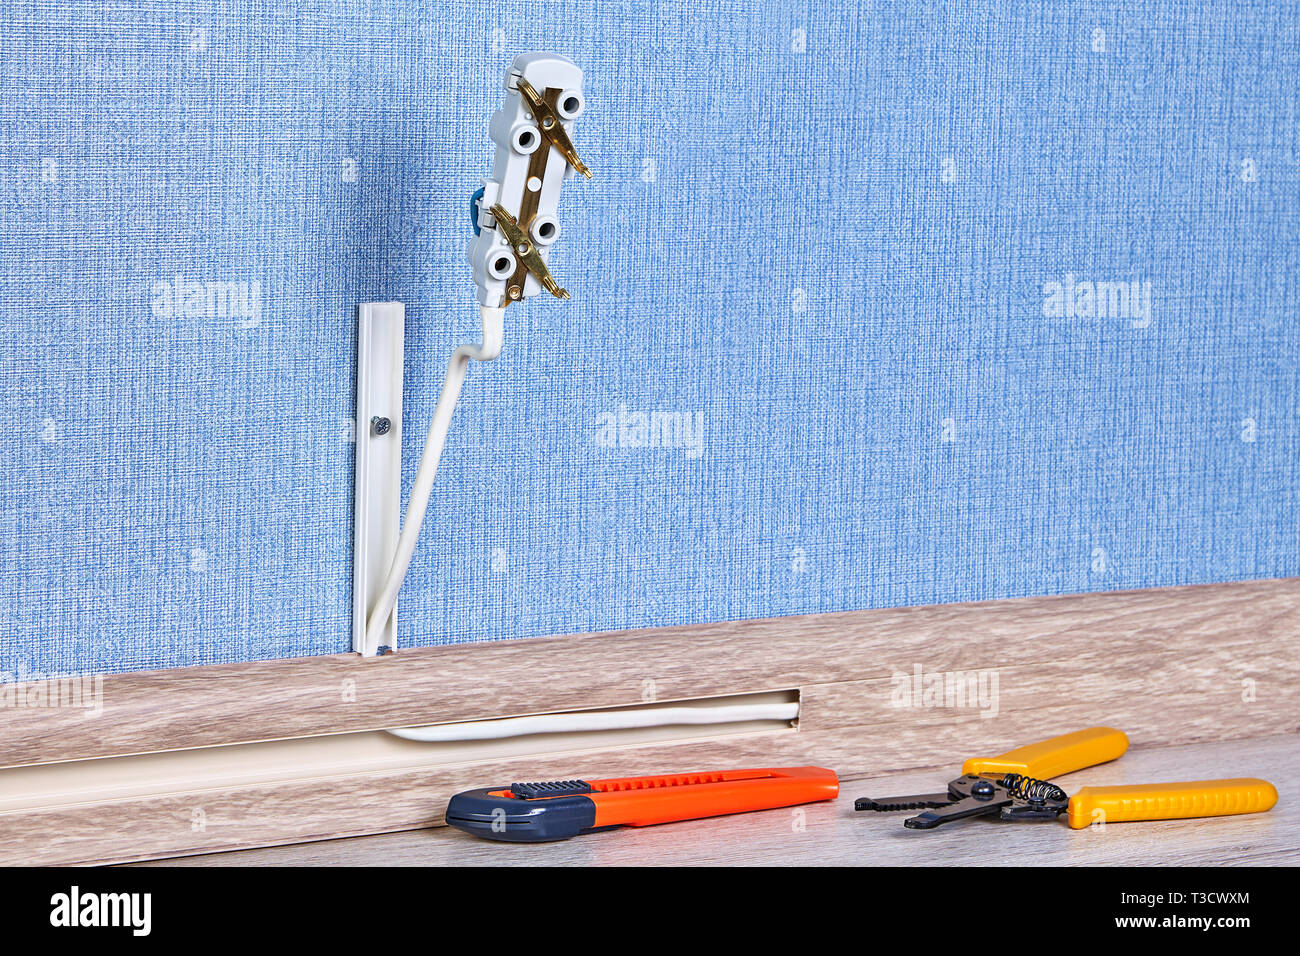 installing of electric plug house wiring with hand tools on the floor